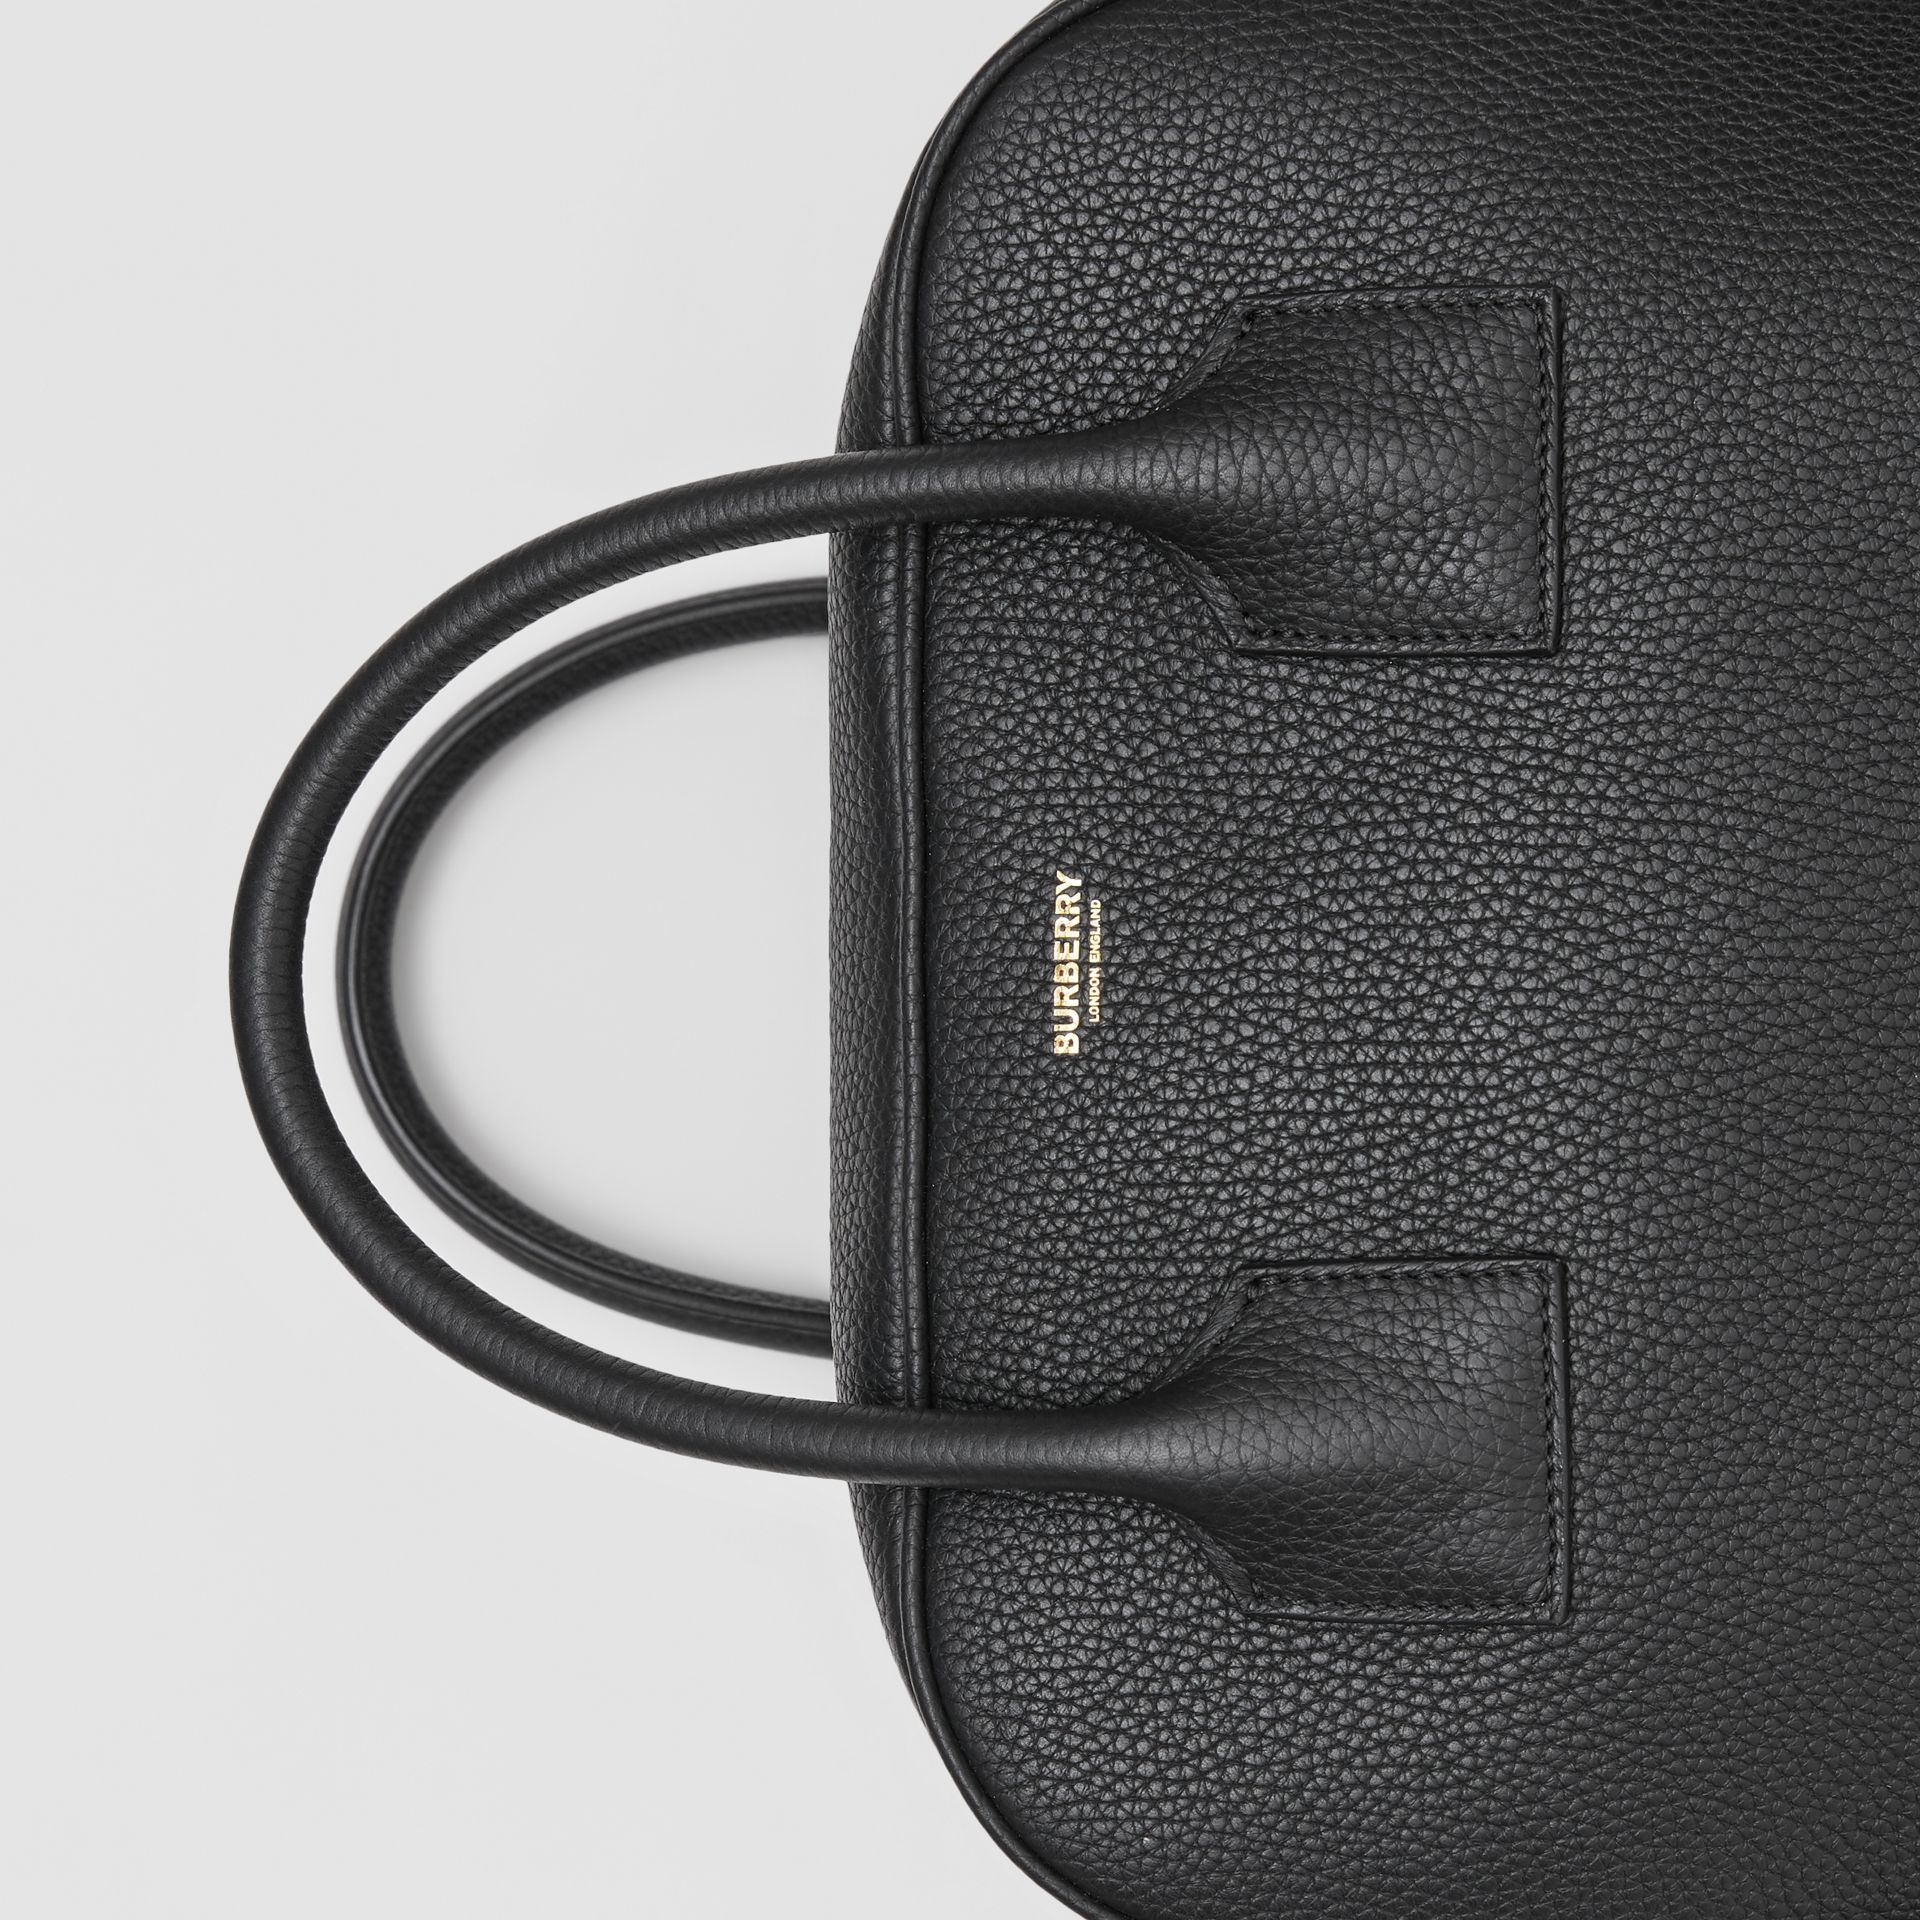 Medium Leather Cube Bag in Black - Women | Burberry Hong Kong S.A.R - gallery image 1